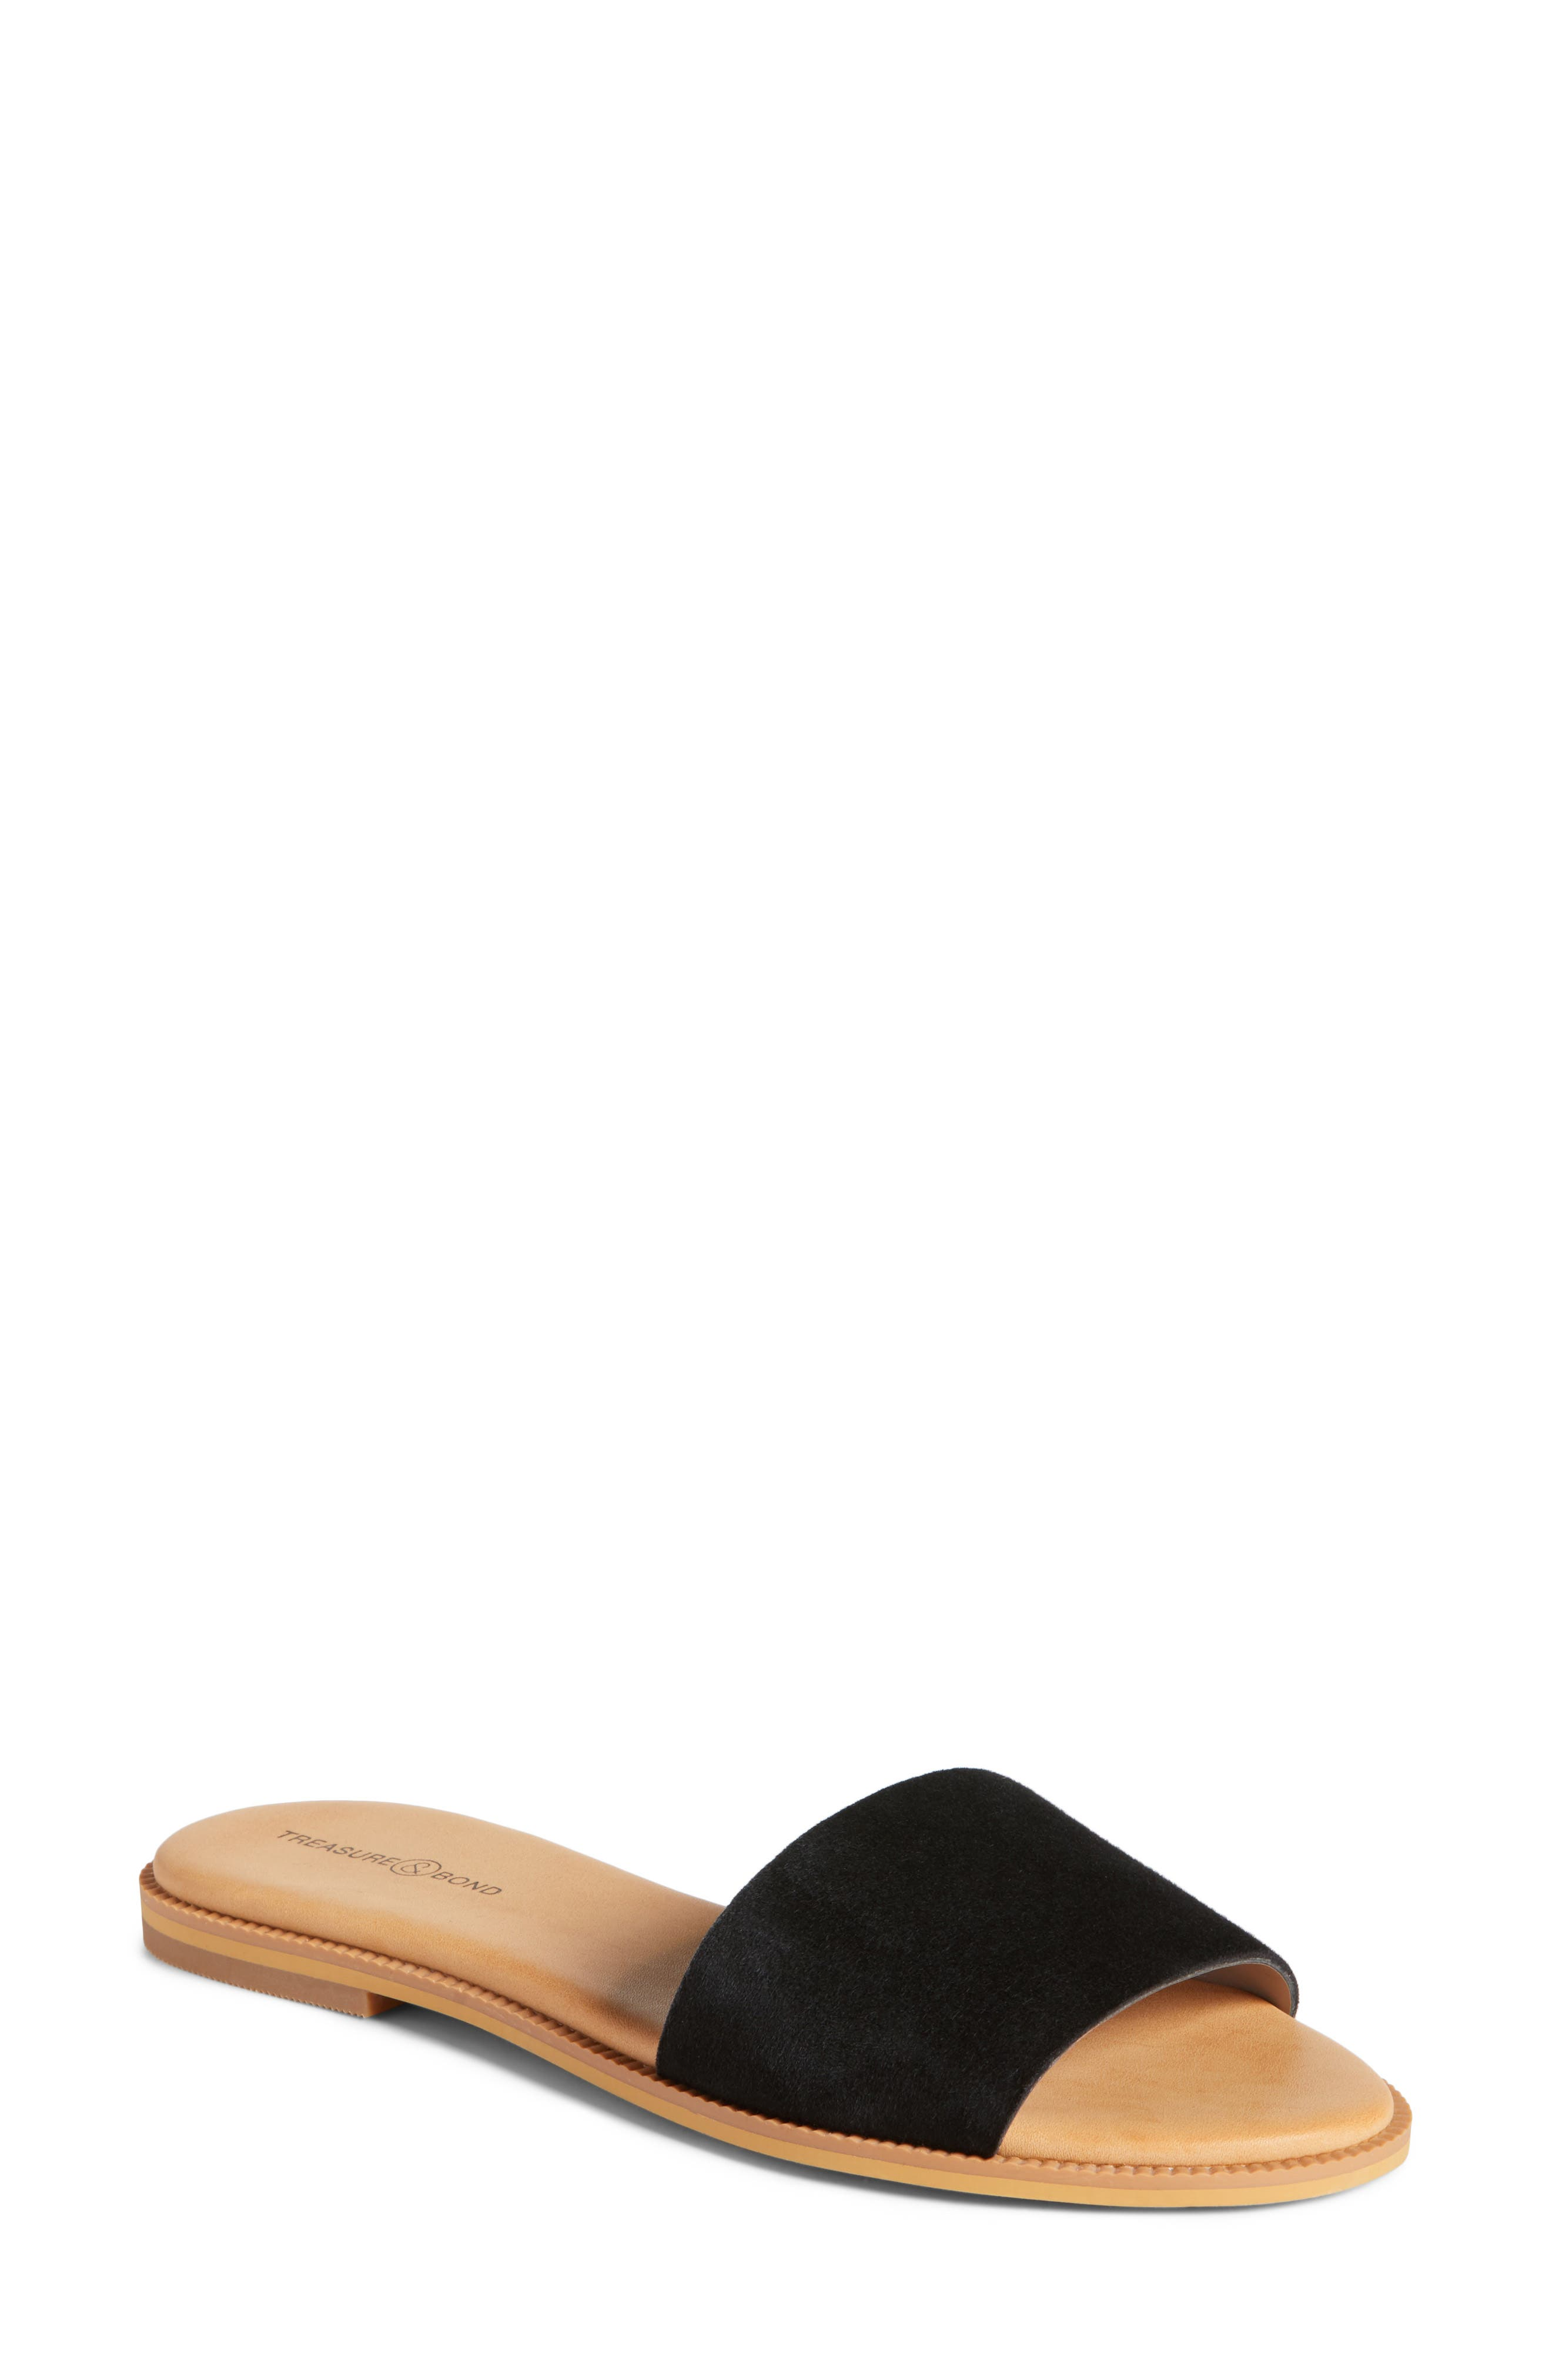 Mere Flat Slide Sandal,                         Main,                         color, Black Suede